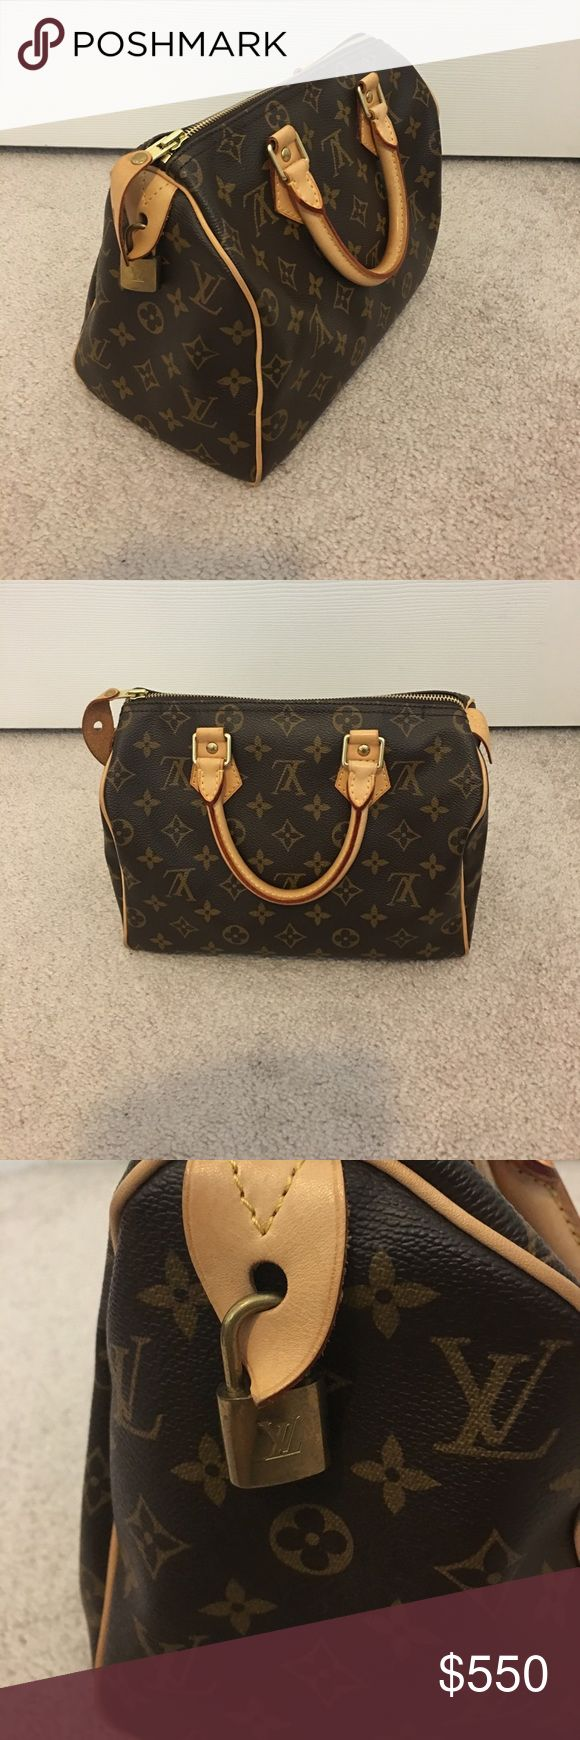 AUTHENTIC Louis Vuitton Monogram Speedy 25 In excellent used condition. Includes original tags, lock and keys. Watermark on handle as shown in pic Louis Vuitton Bags